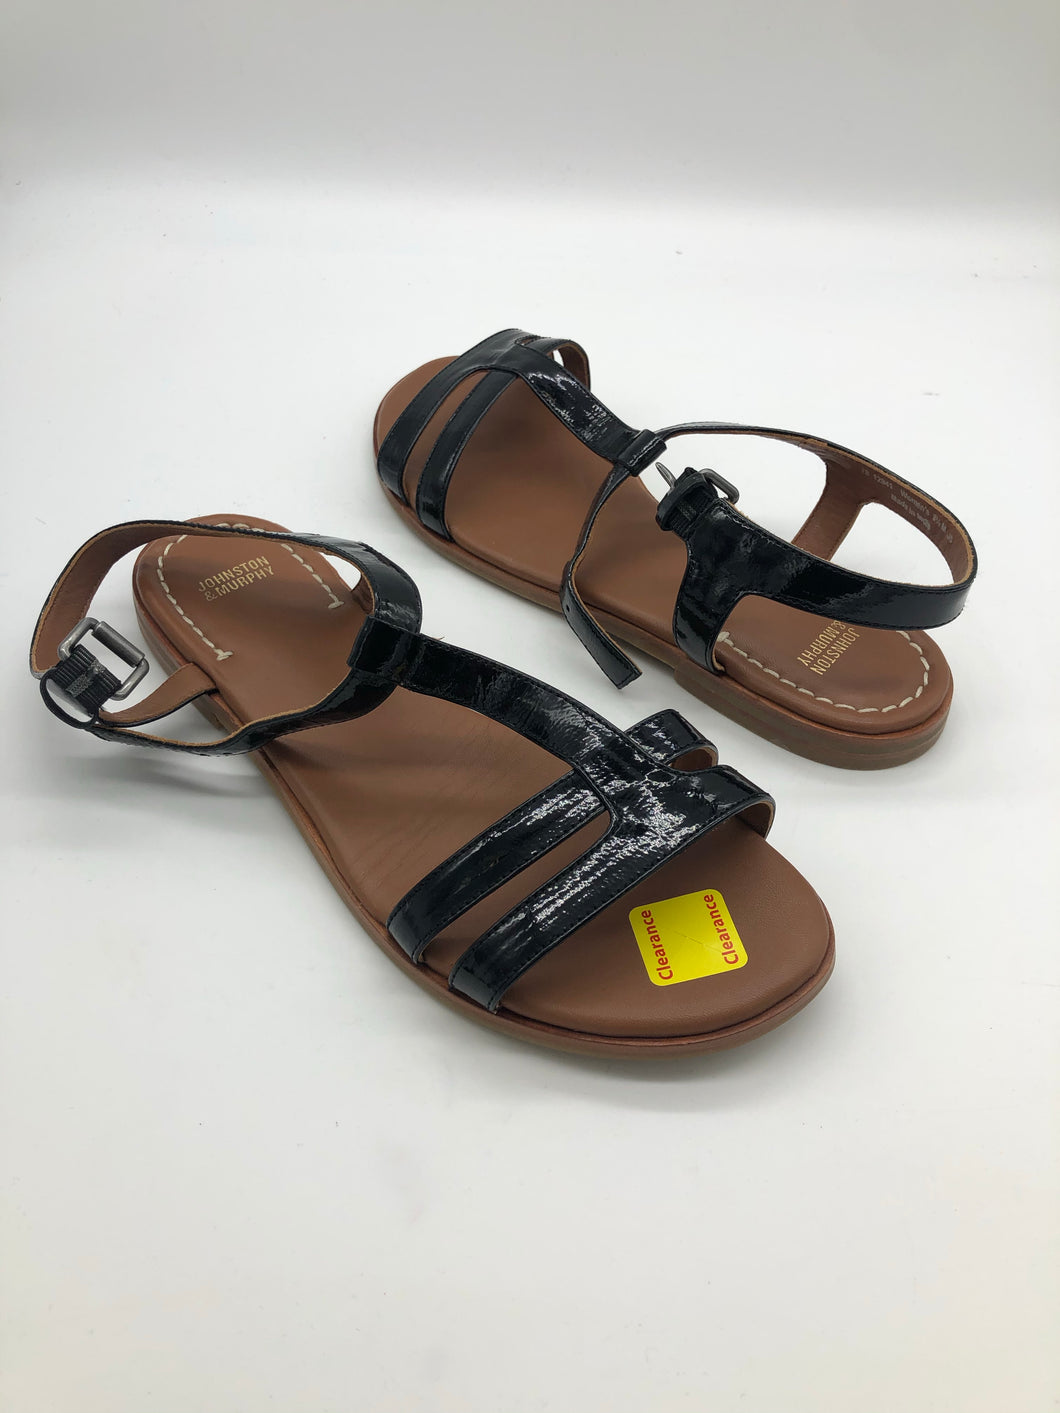 Johnston & Murphy sandals SIZE 9.5